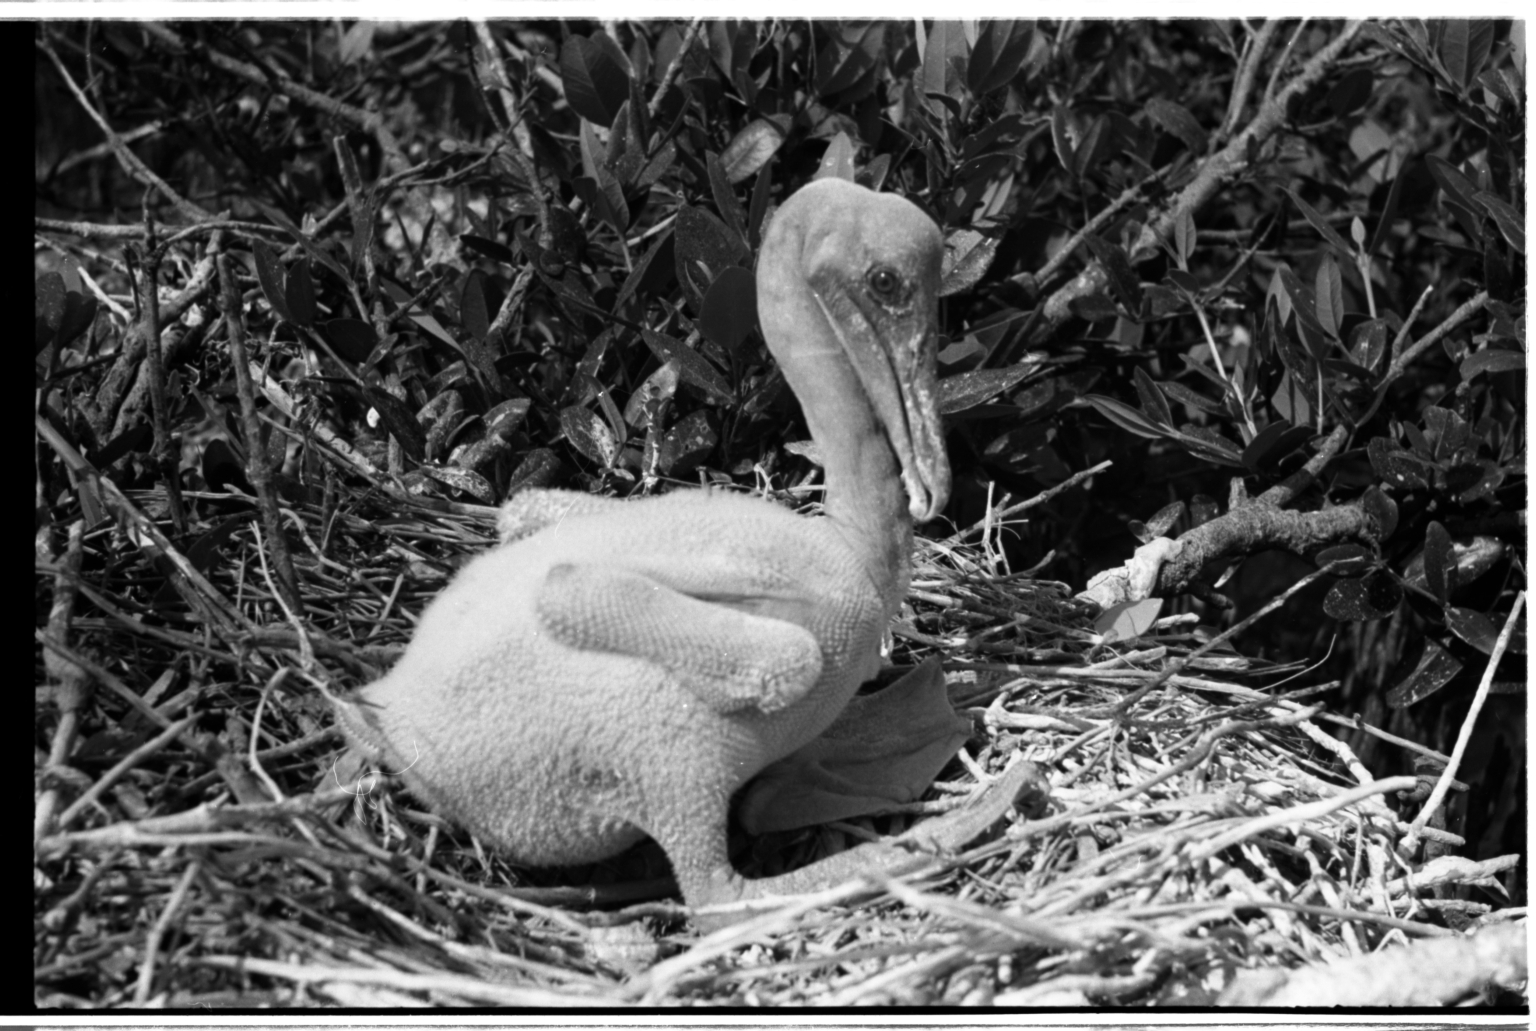 Pelican Nest and Nestling